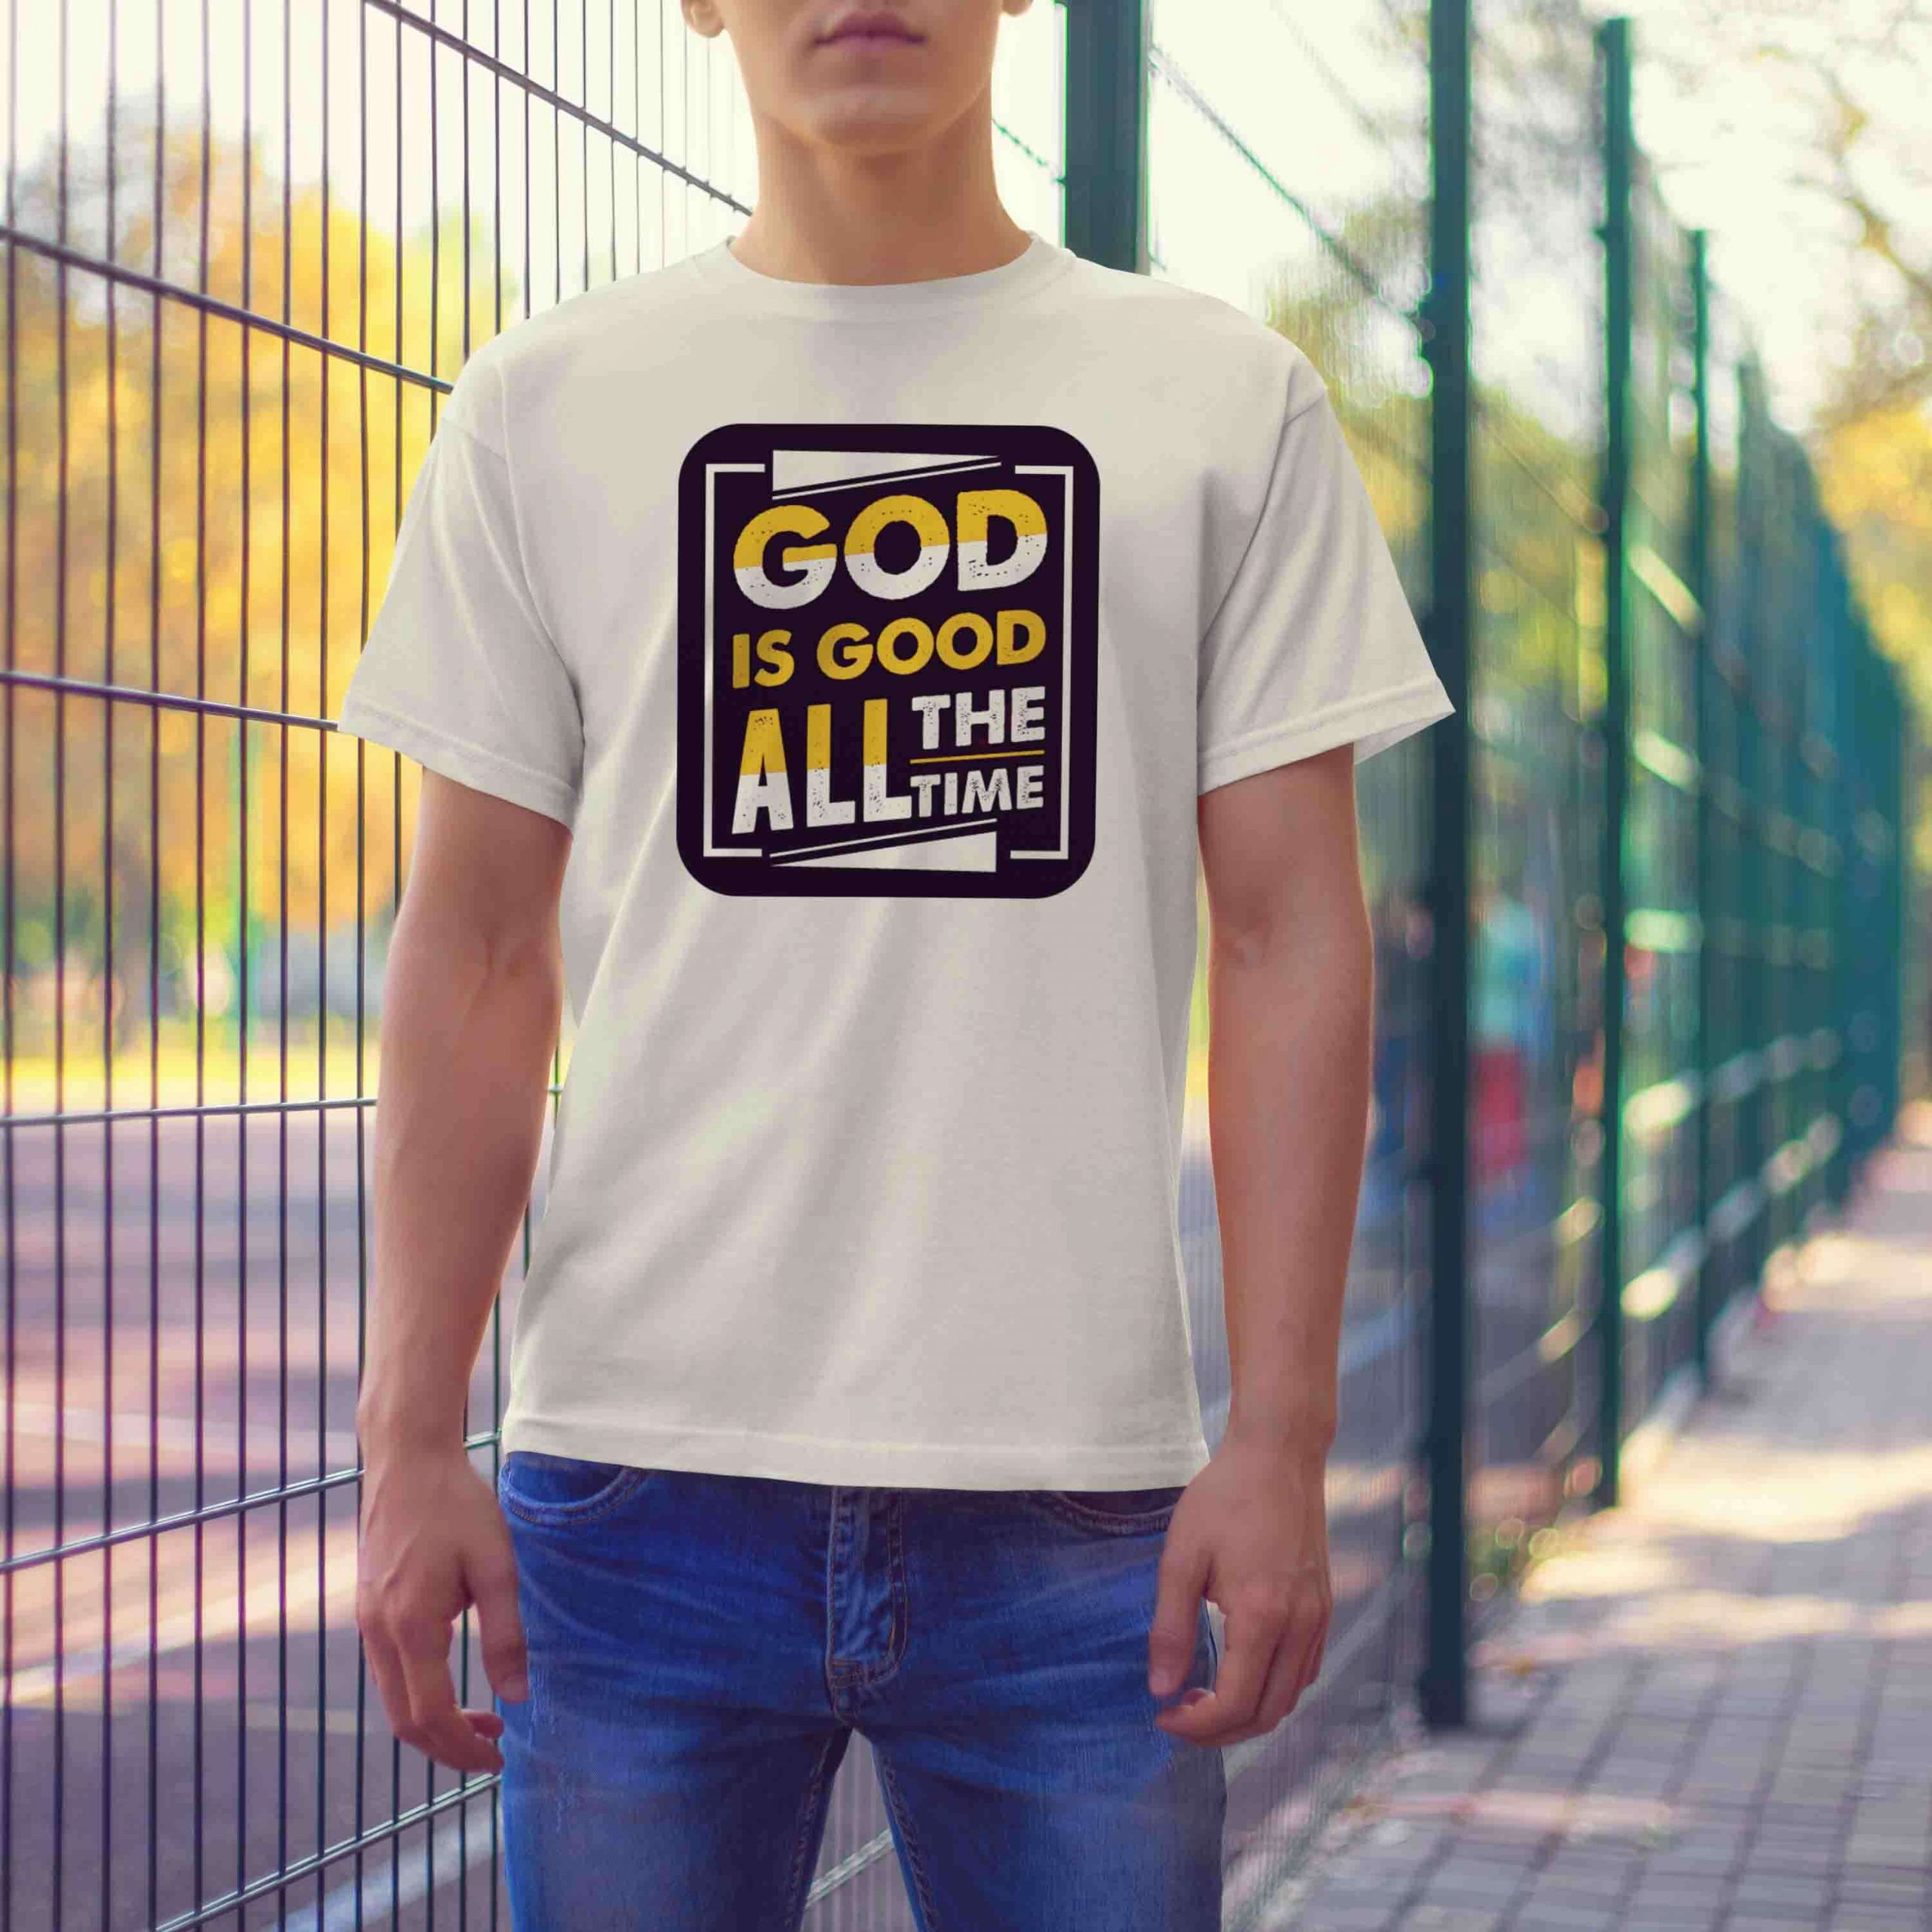 God is good all the time quotes printed white t-shirt